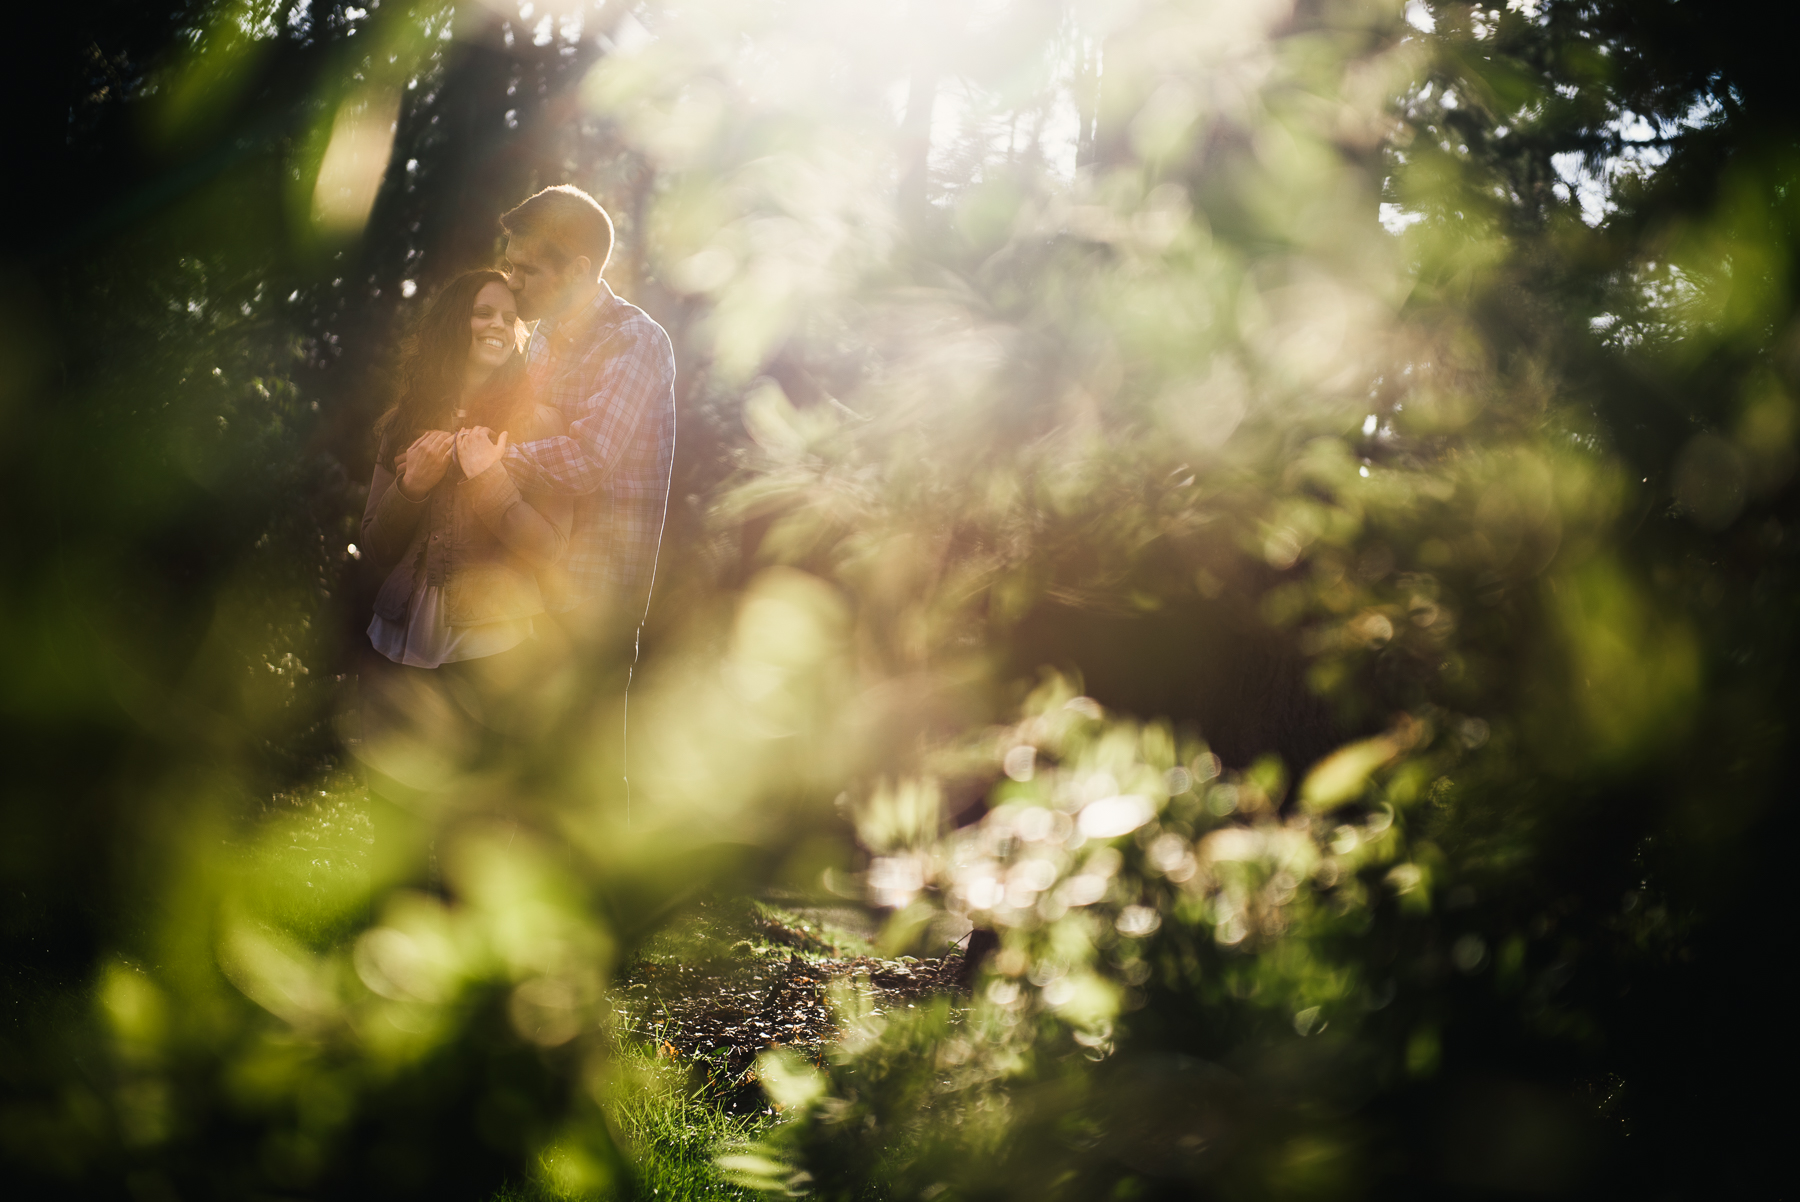 washington arboretum sunset engagement